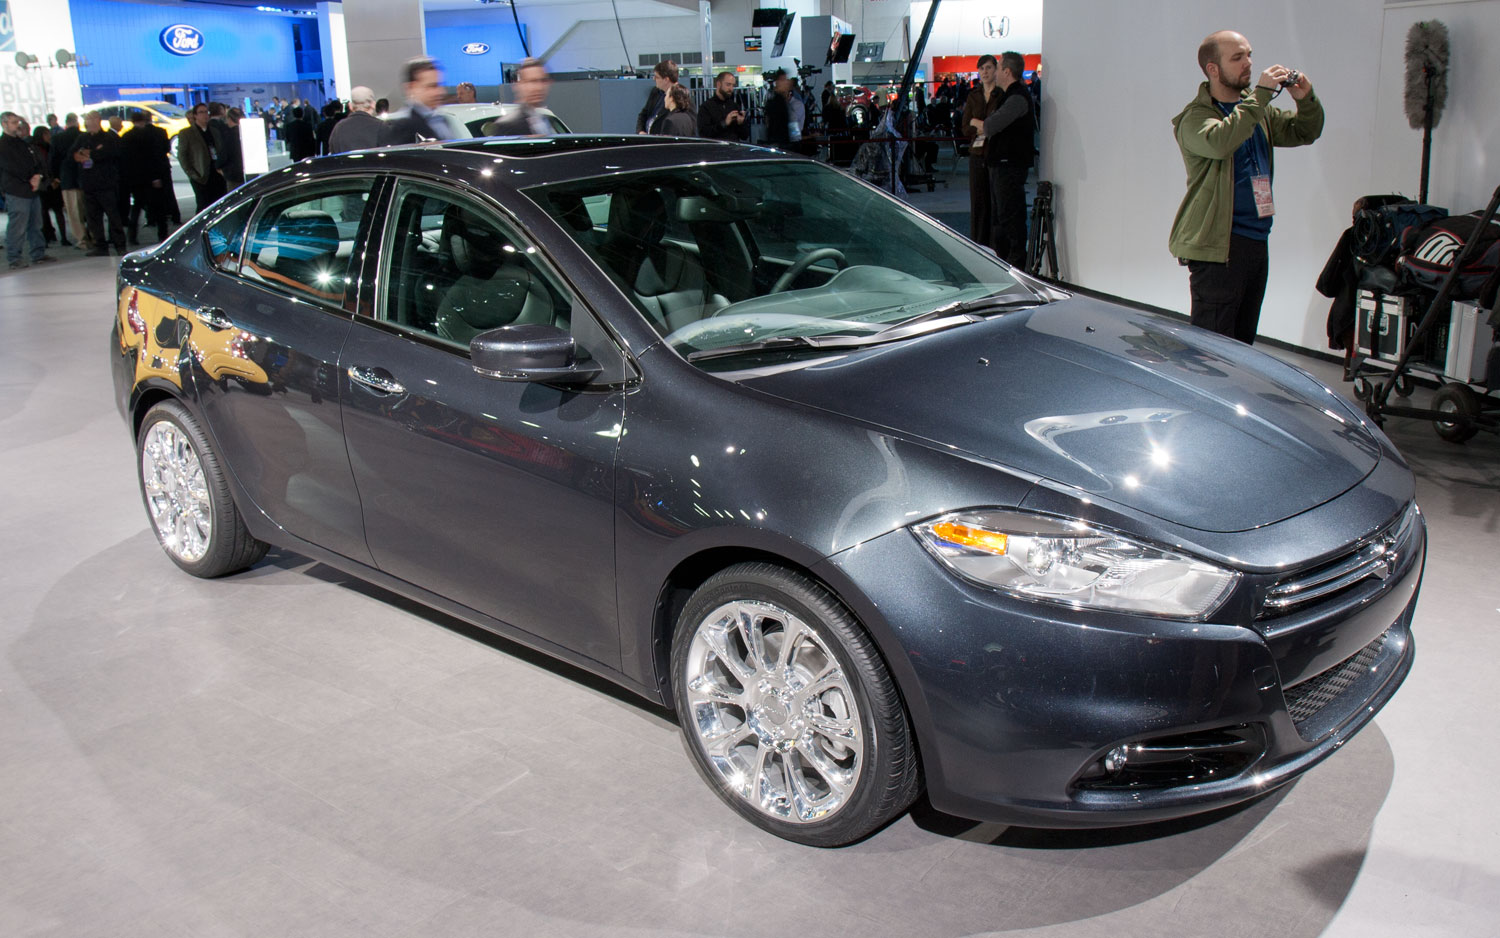 dart dodge looks trim think metallic steel which maximum closest really know don